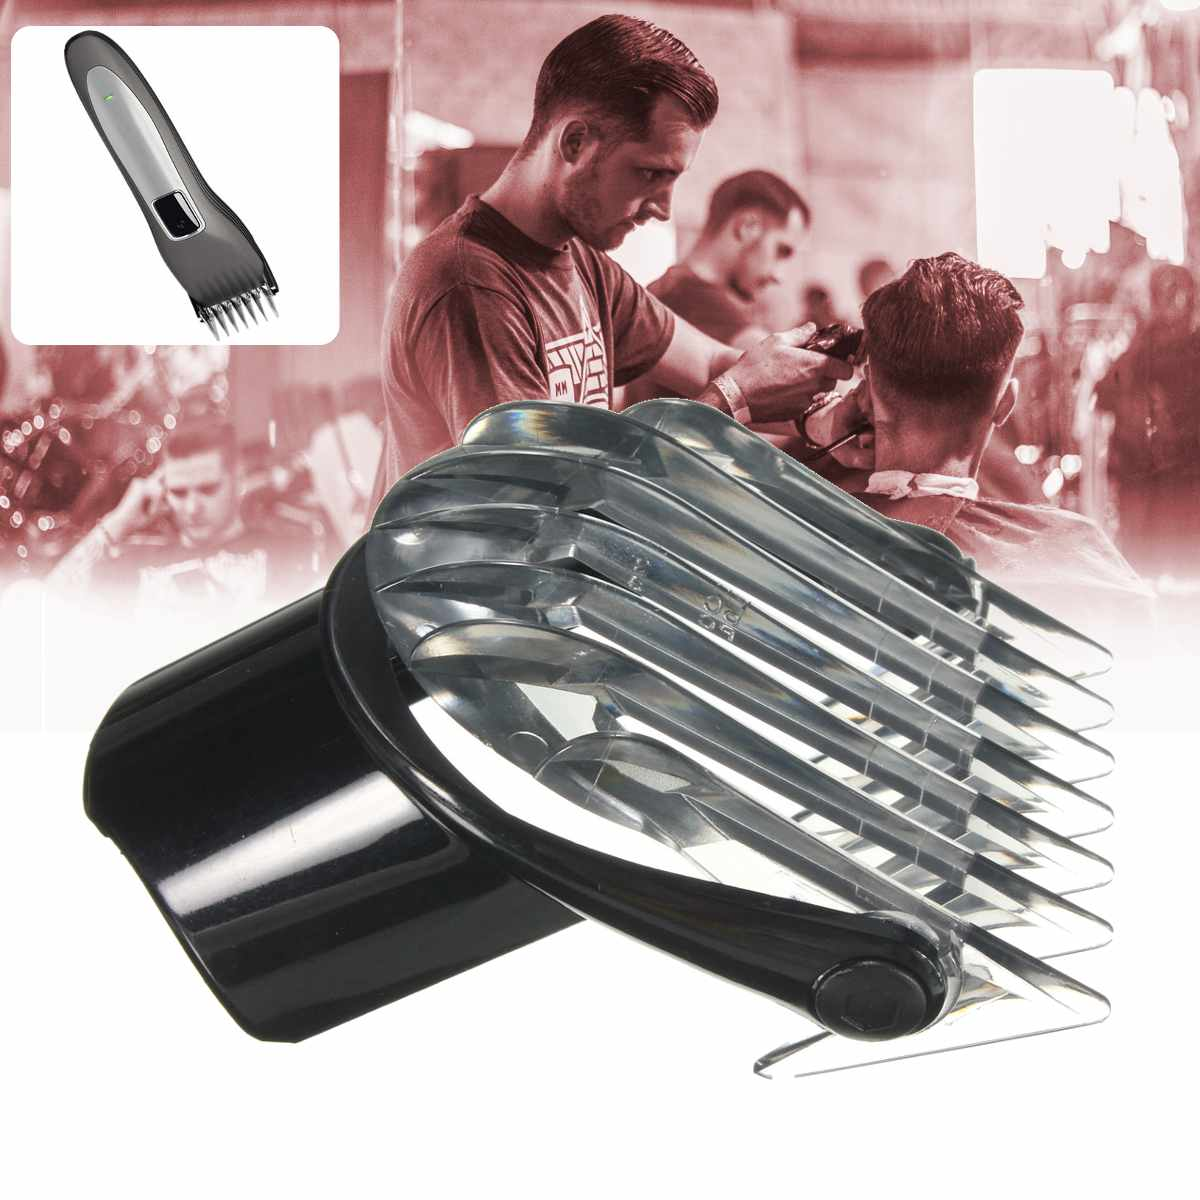 3-21mm Hair Clipper Attachment Grooming Comb For Philips QC5010 QC5050 QC5070 QC5090